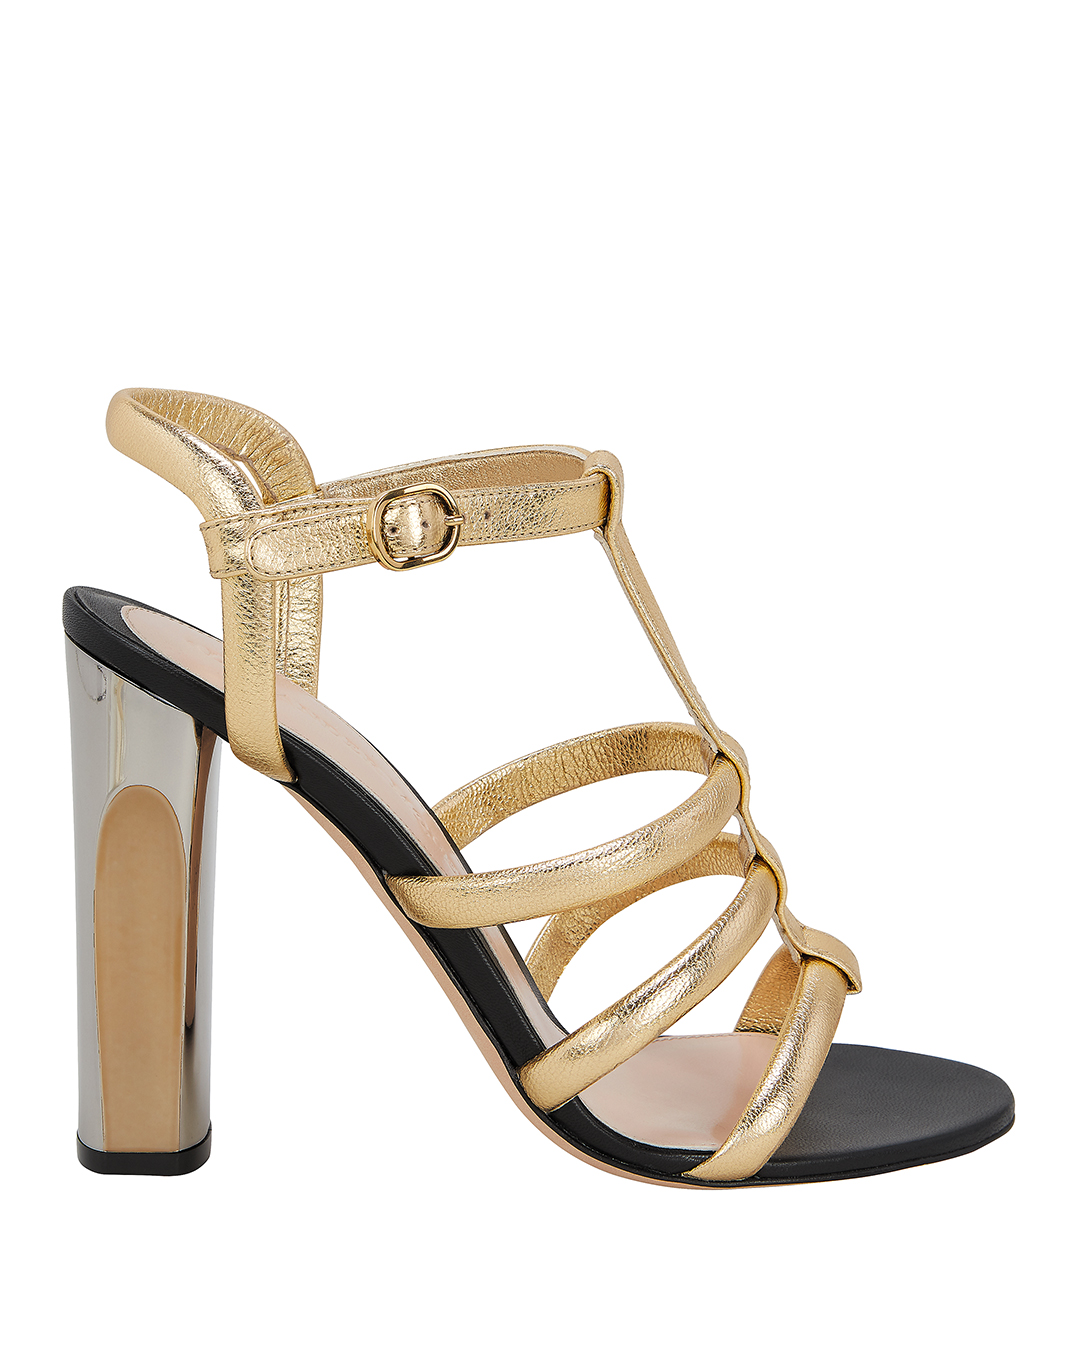 1a5c80a4092 Gold Leather Gladiator Sandals - Buy Best Gold Leather Gladiator Sandals  from Fashion Influencers